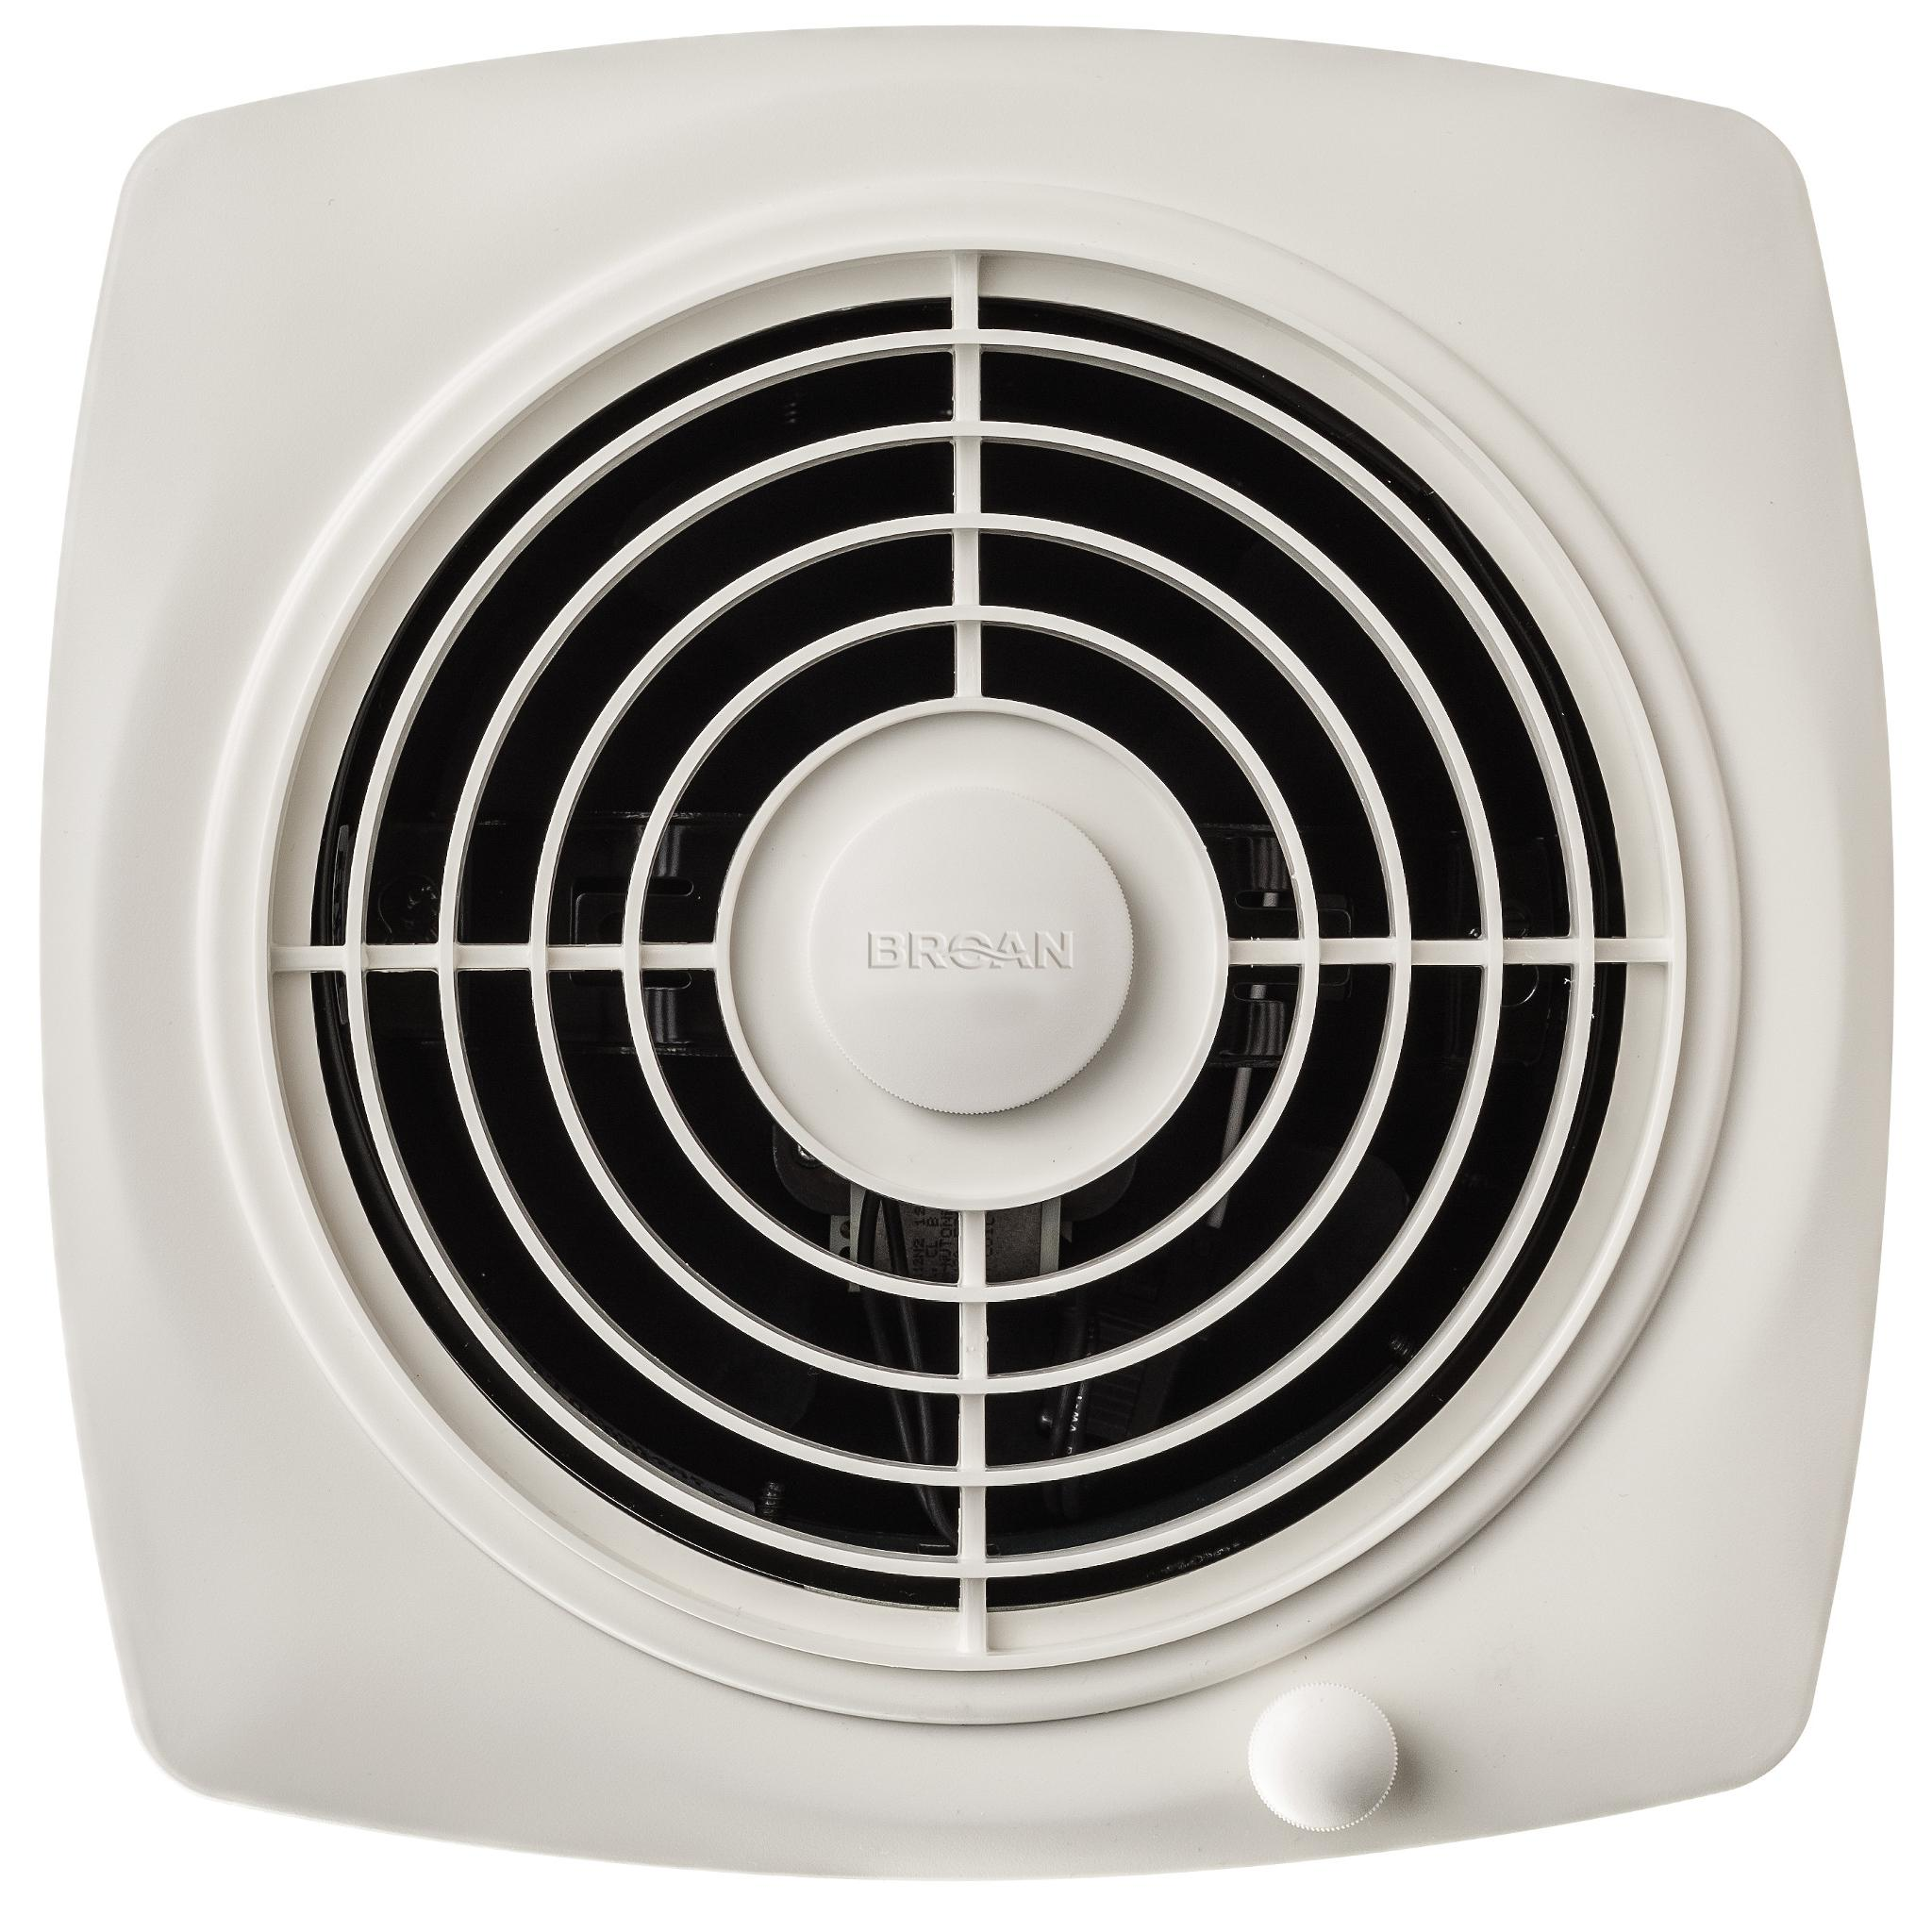 Room To Room Ventilation Fans : Broan through wall fan cfm sones white